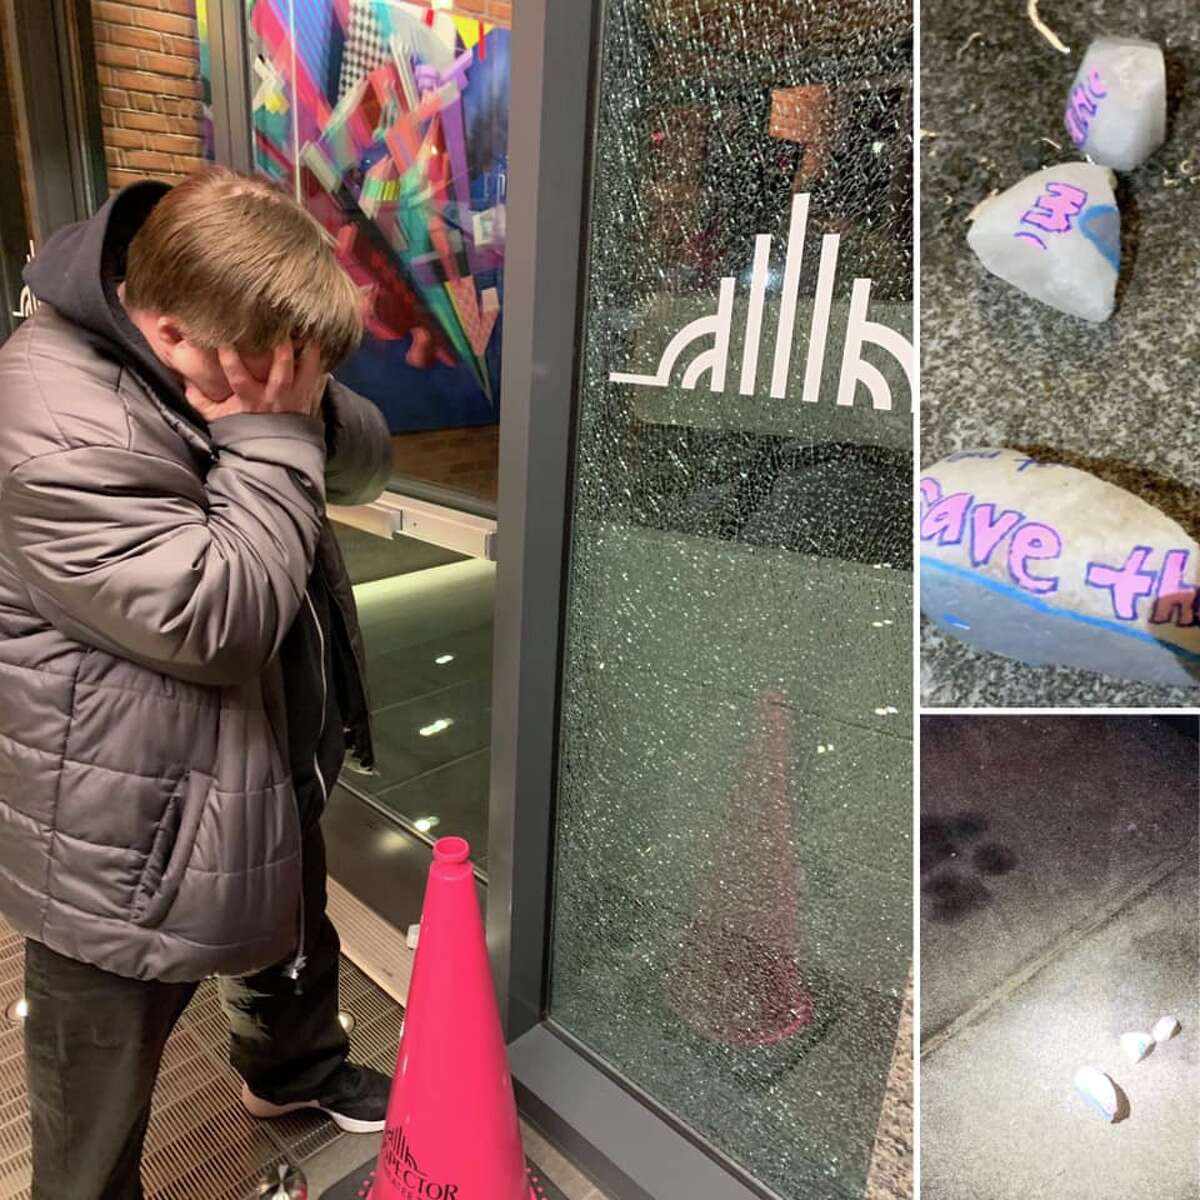 The Prospector Theater was the target of vandalism Friday night while Prospects were at work inside the nonprofit organization dedicated to providing meaningful employment to adults with disabilities.